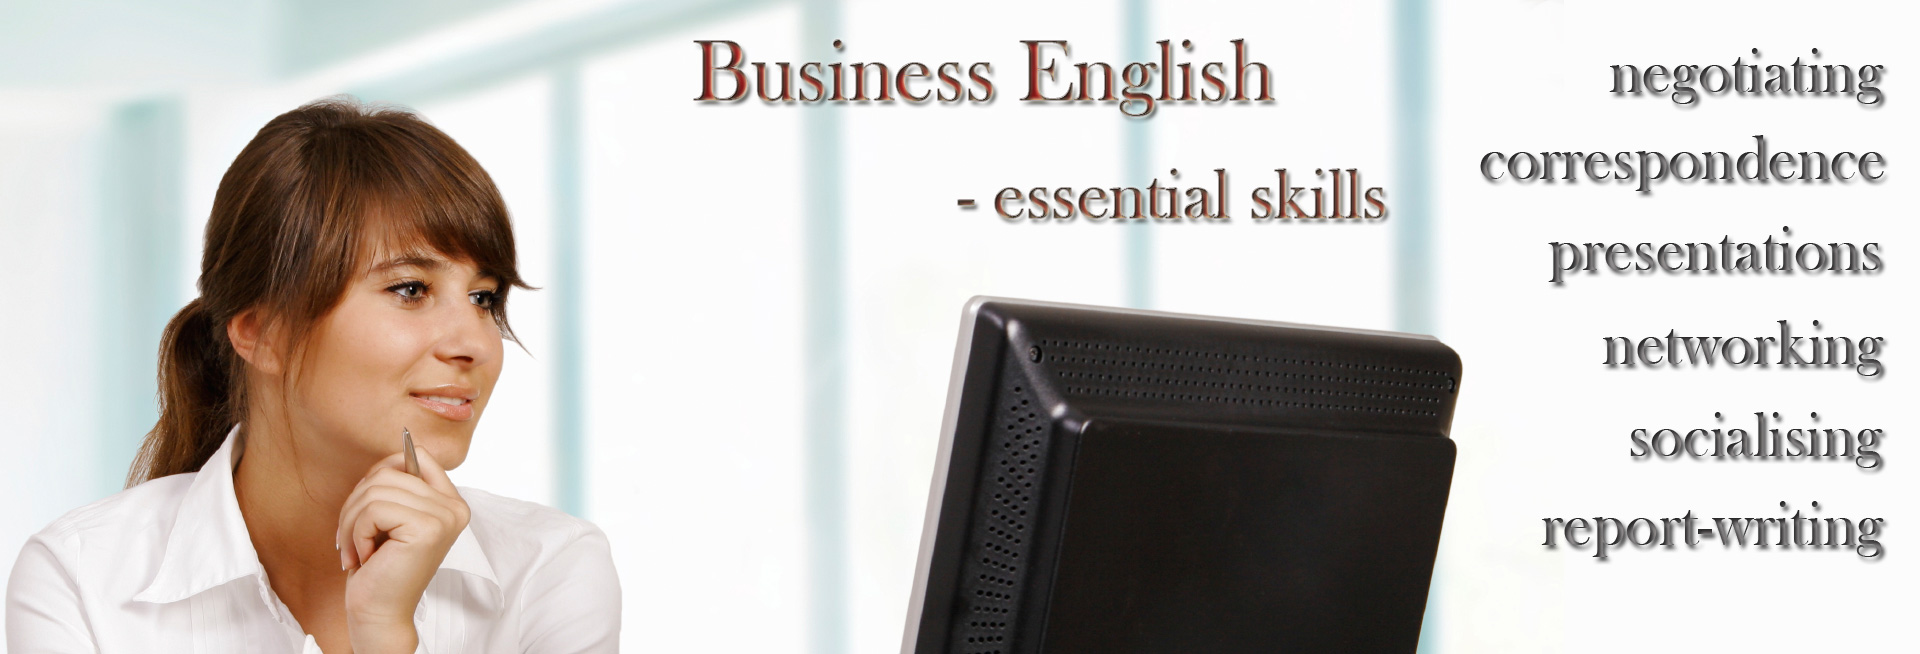 Business English è una competenza essenziale